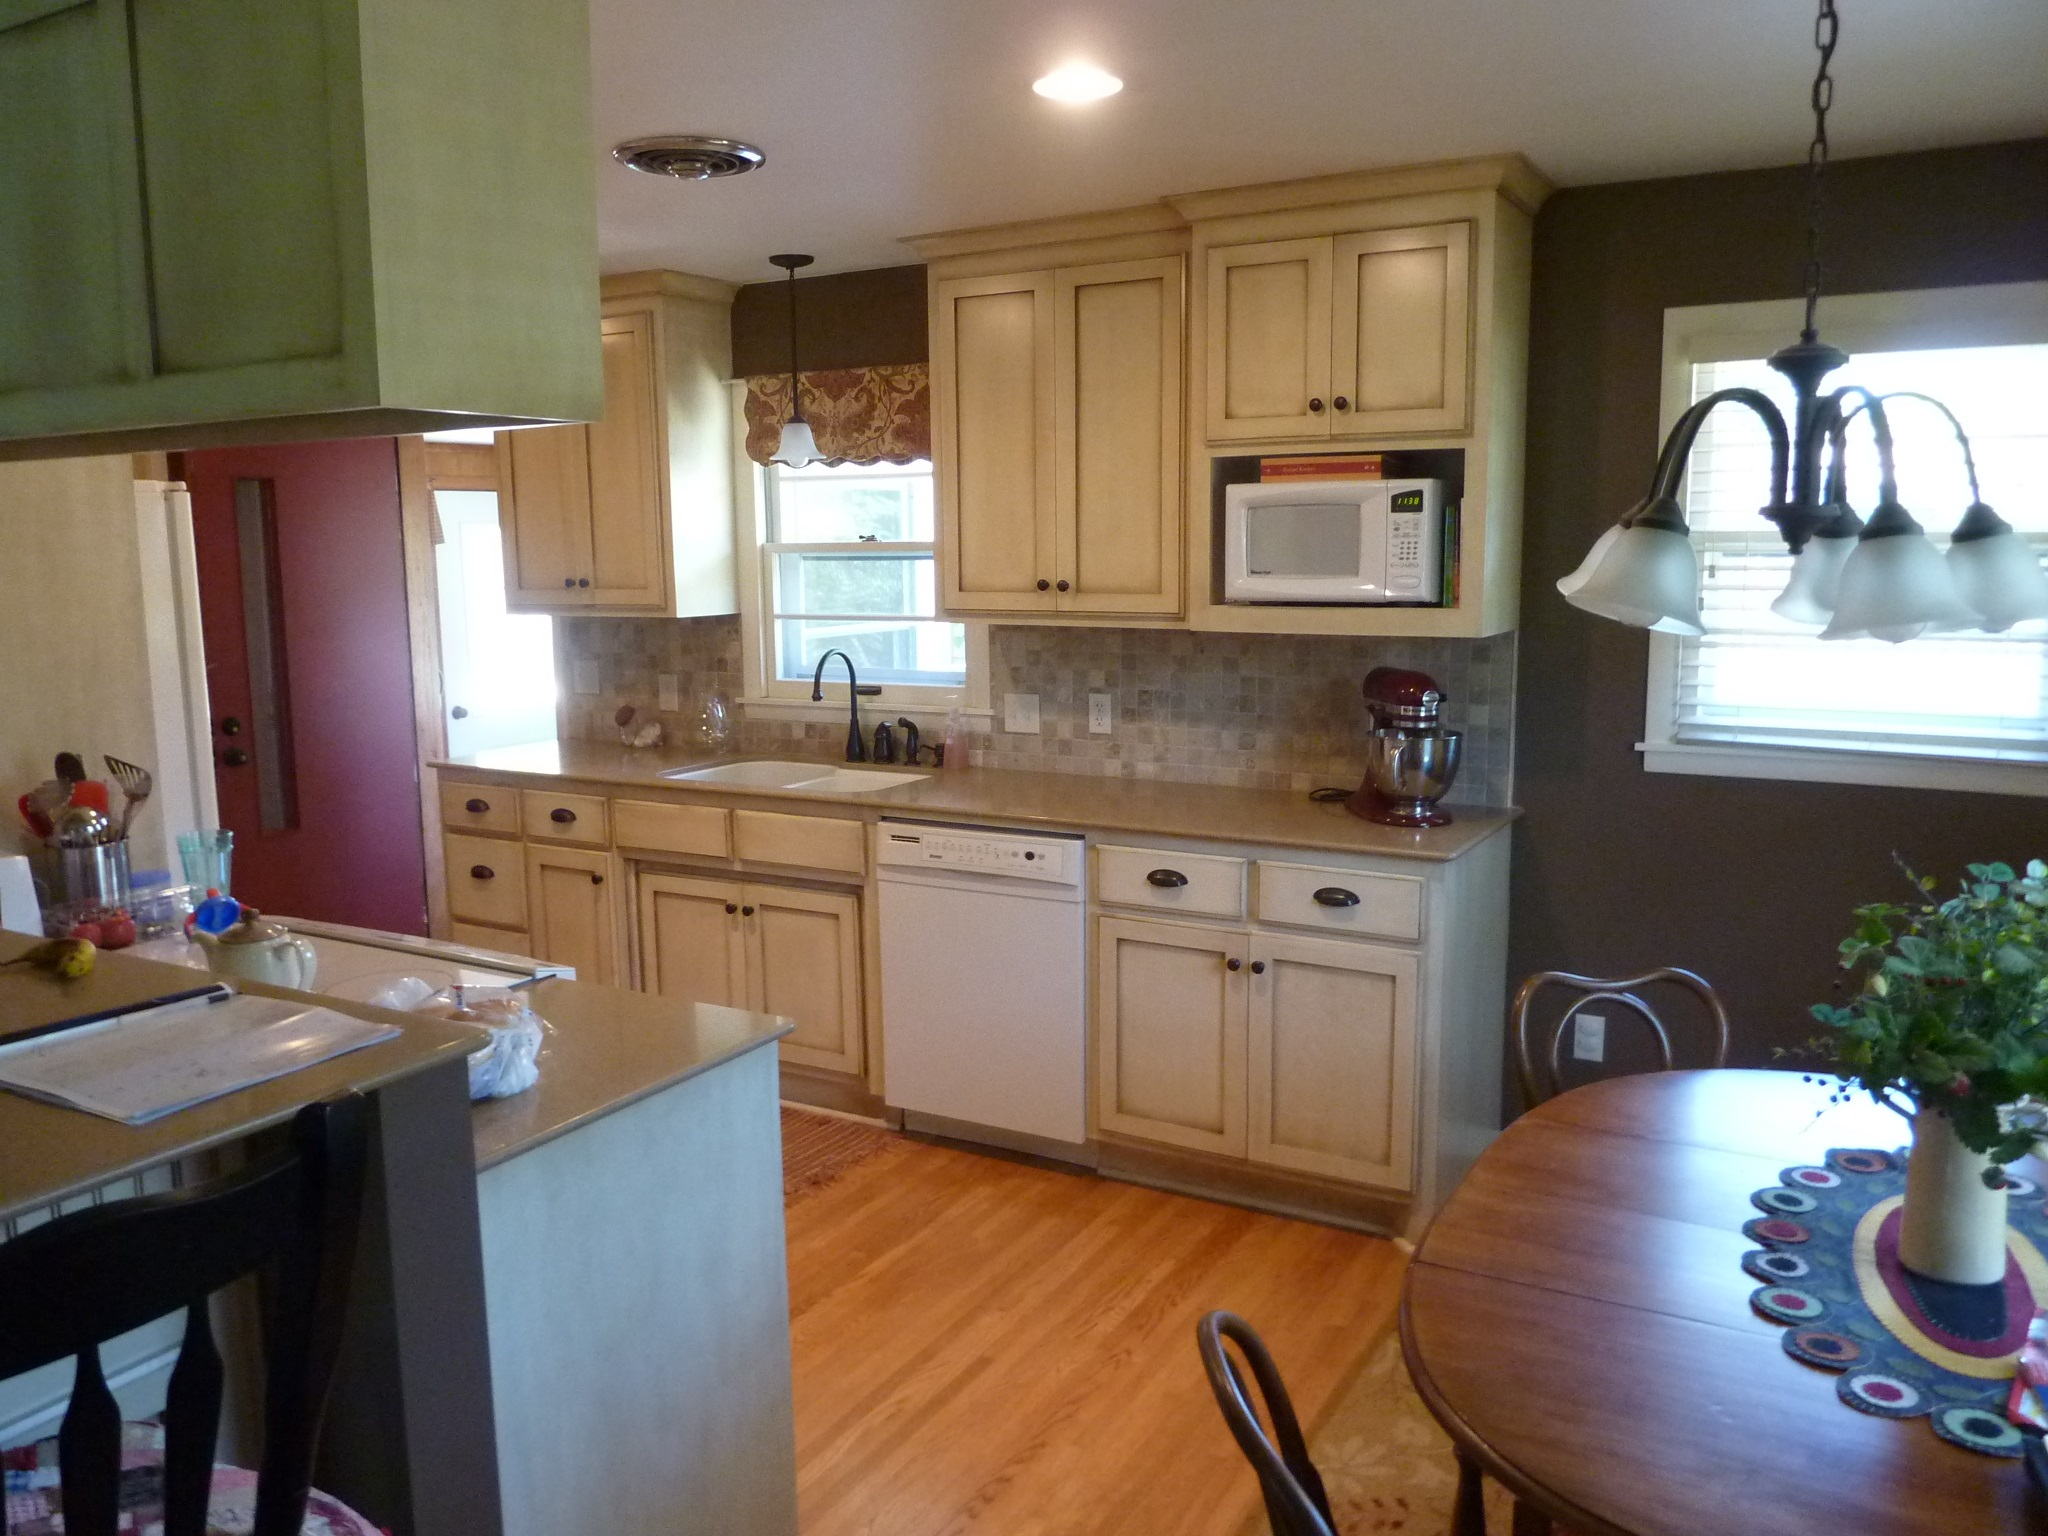 07 Kitchen 2.jpg